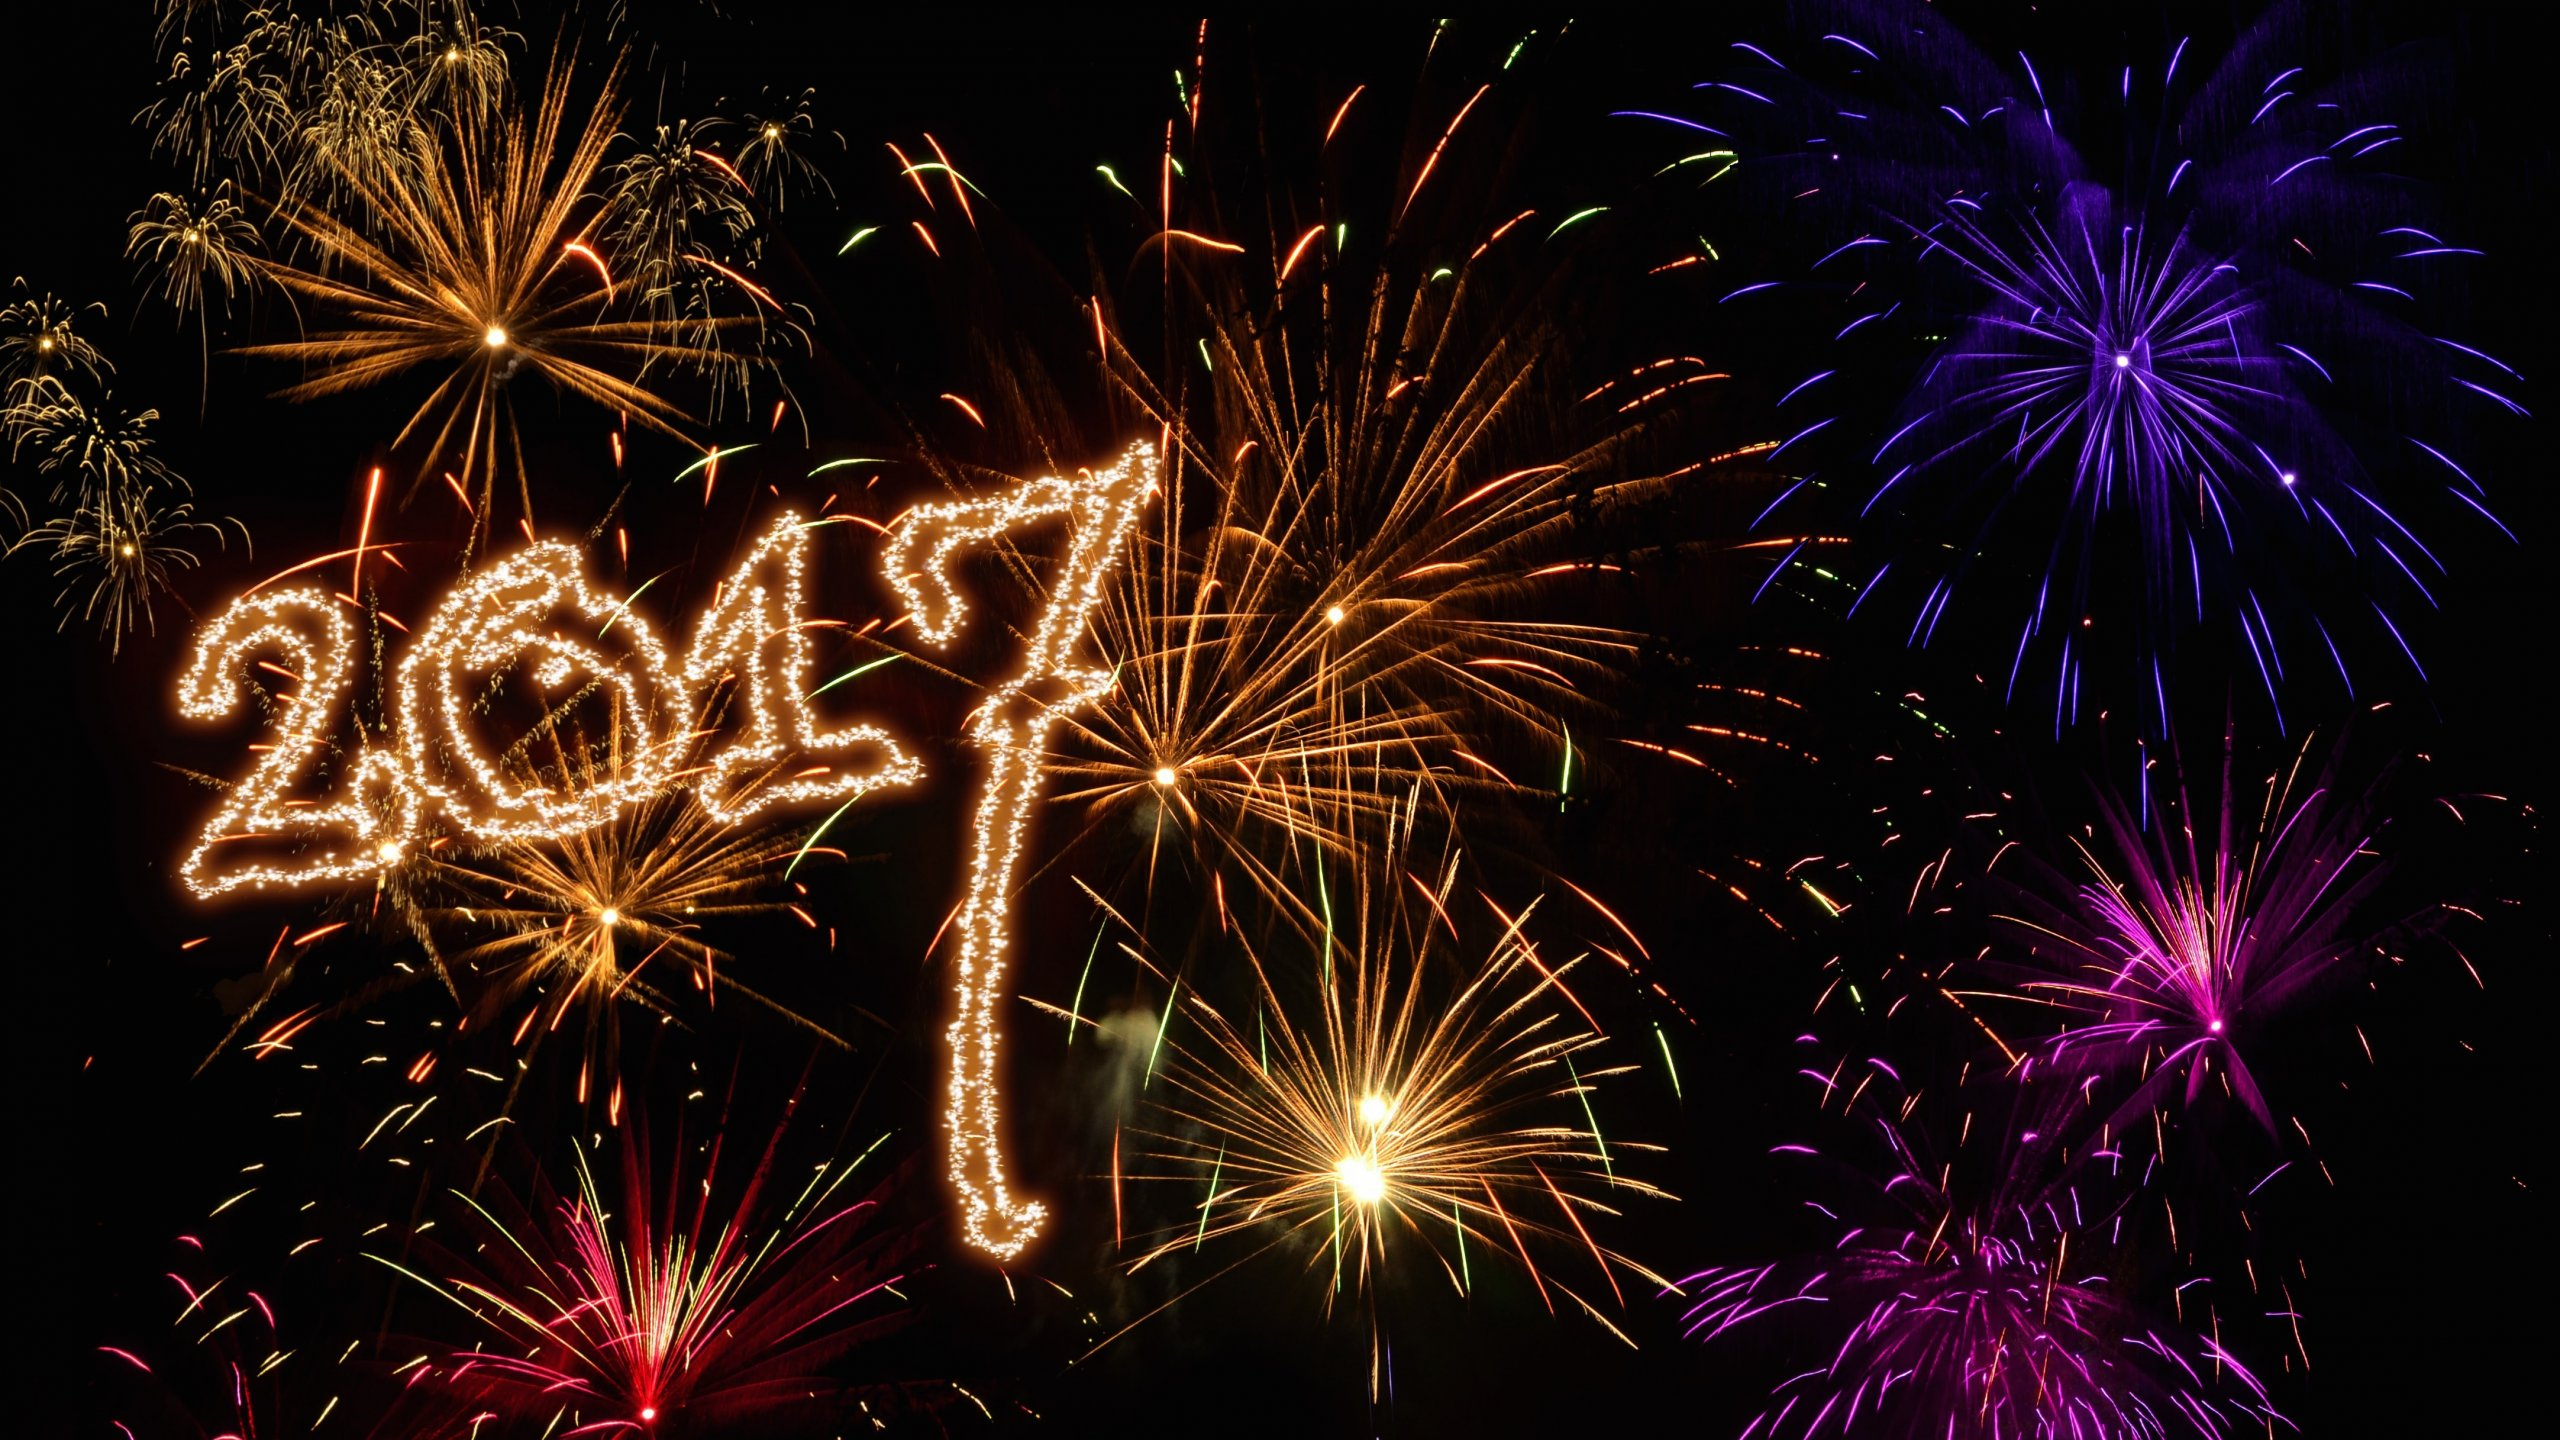 Happy New Year 2017 With Fireworks Wallpaper Id 2908